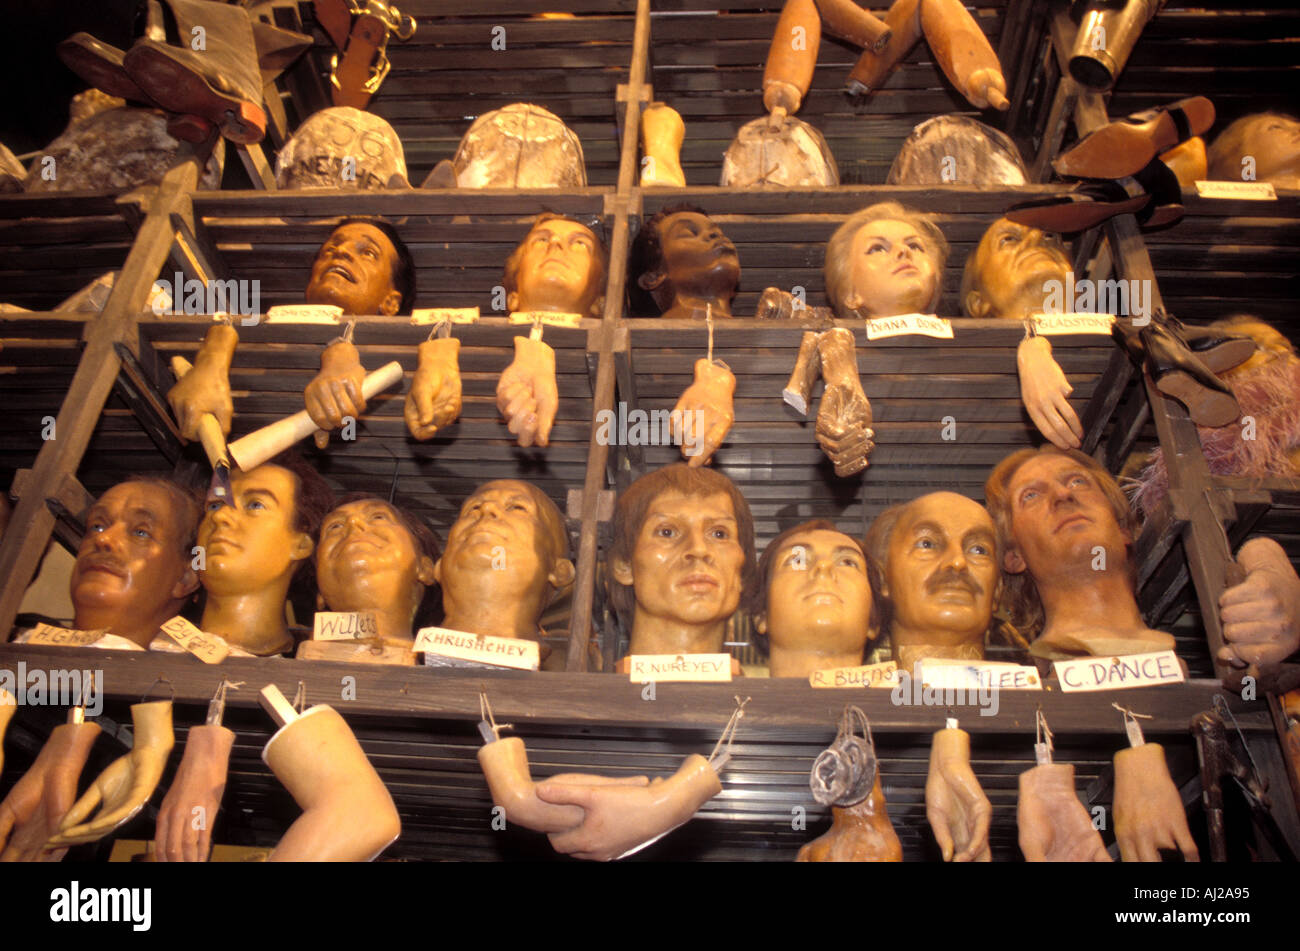 Waxwork heads and hands at Madame Tussauds London England UK - Stock Image